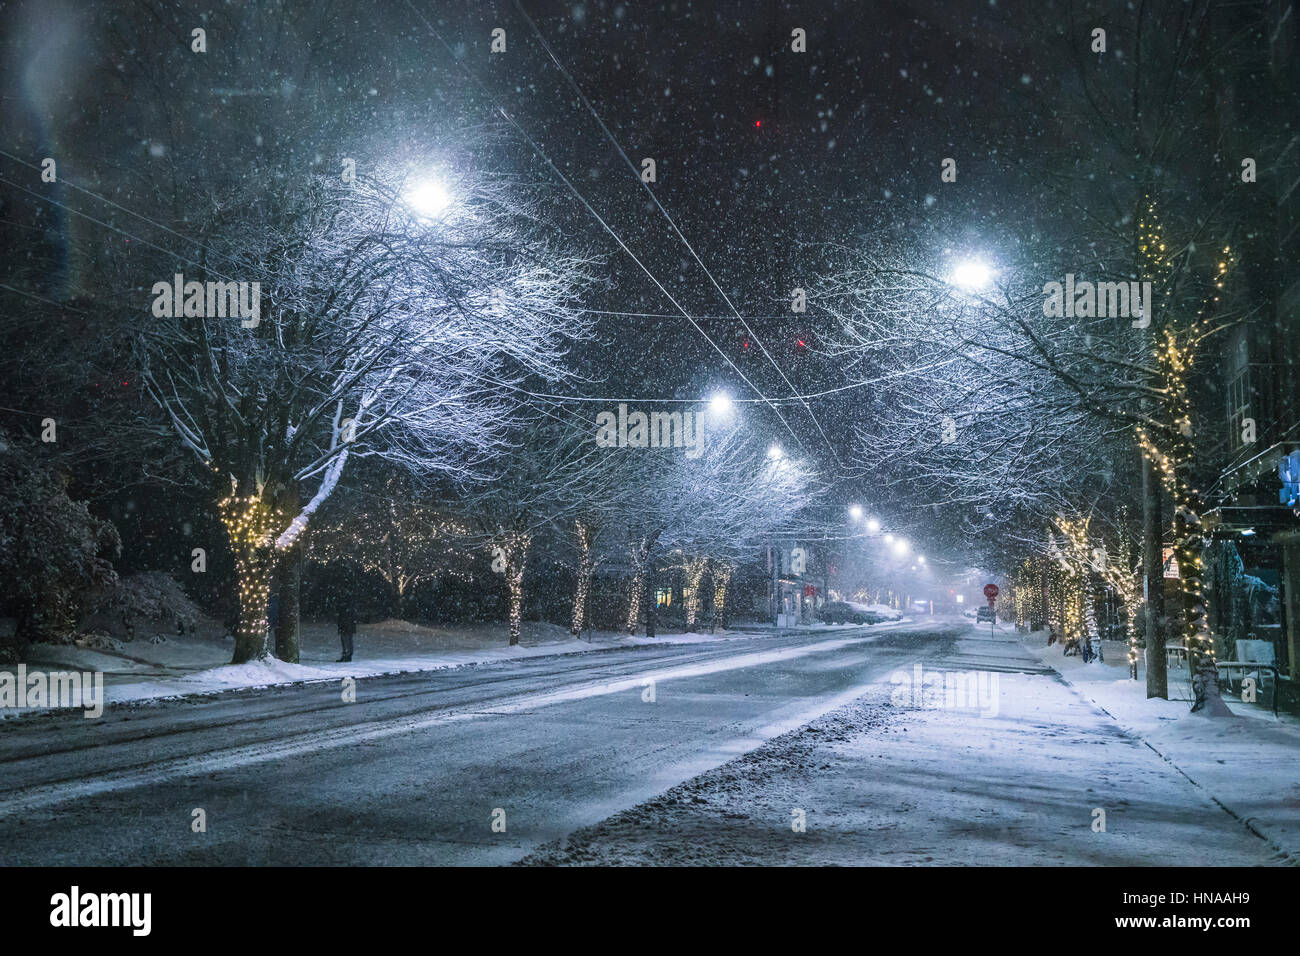 snowy road at night in downtown in winter season Stock Photo